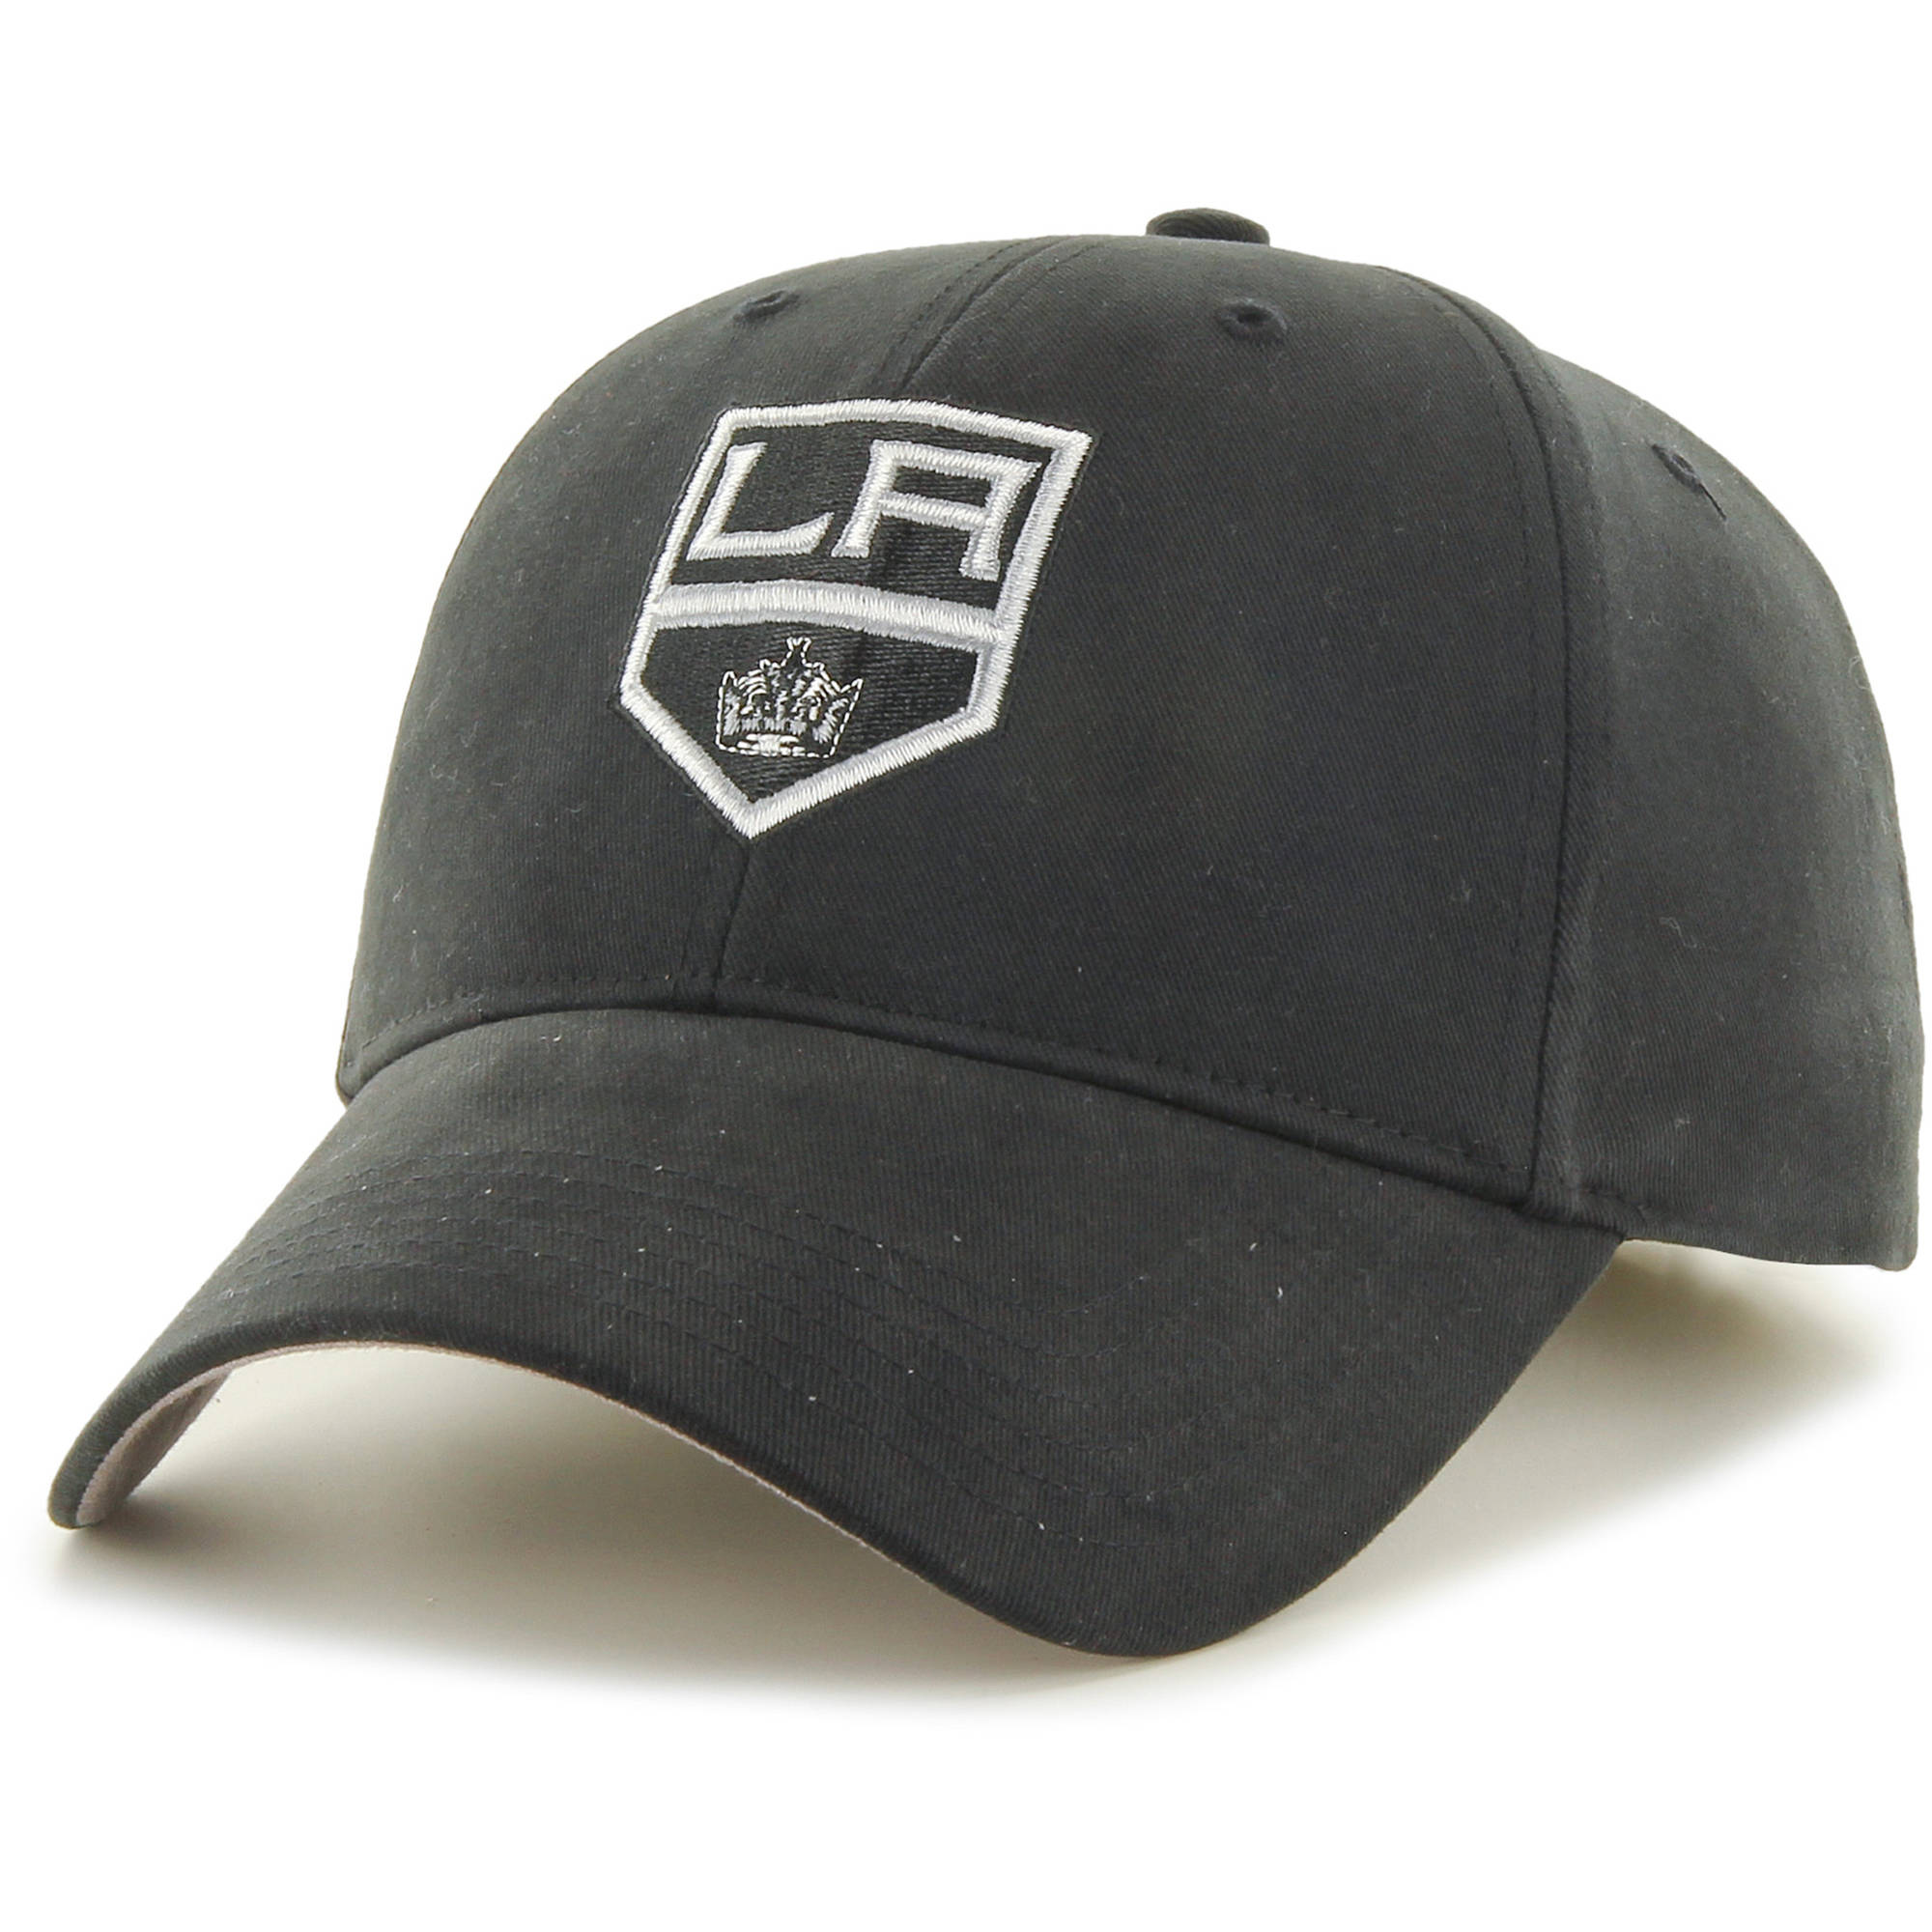 NHL Sacramento Kings Basic Cap / Hat by Fan Favorite